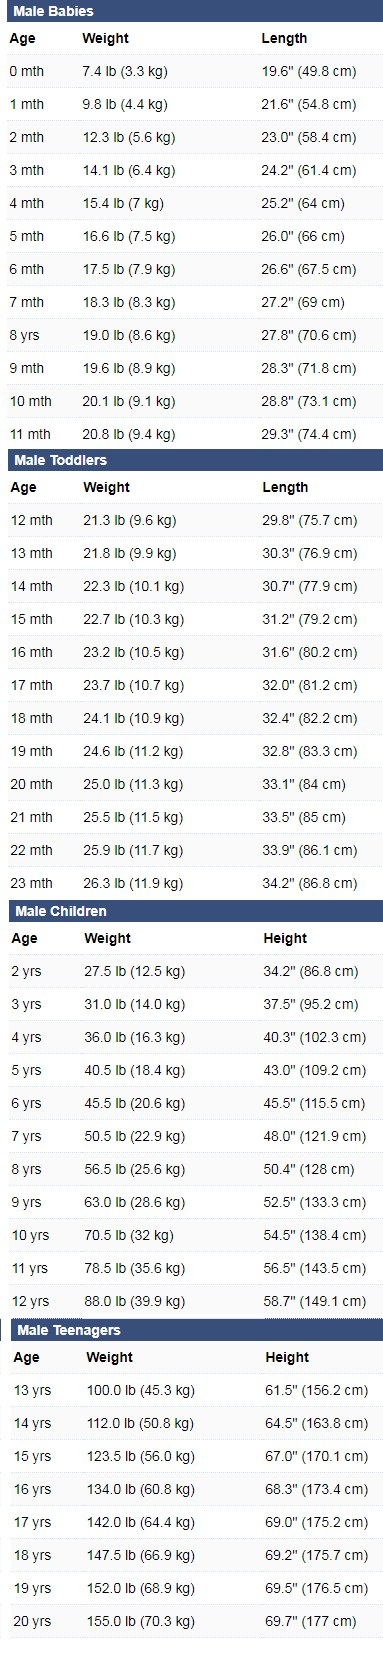 Baby Weight And Height Chart Mersnoforum